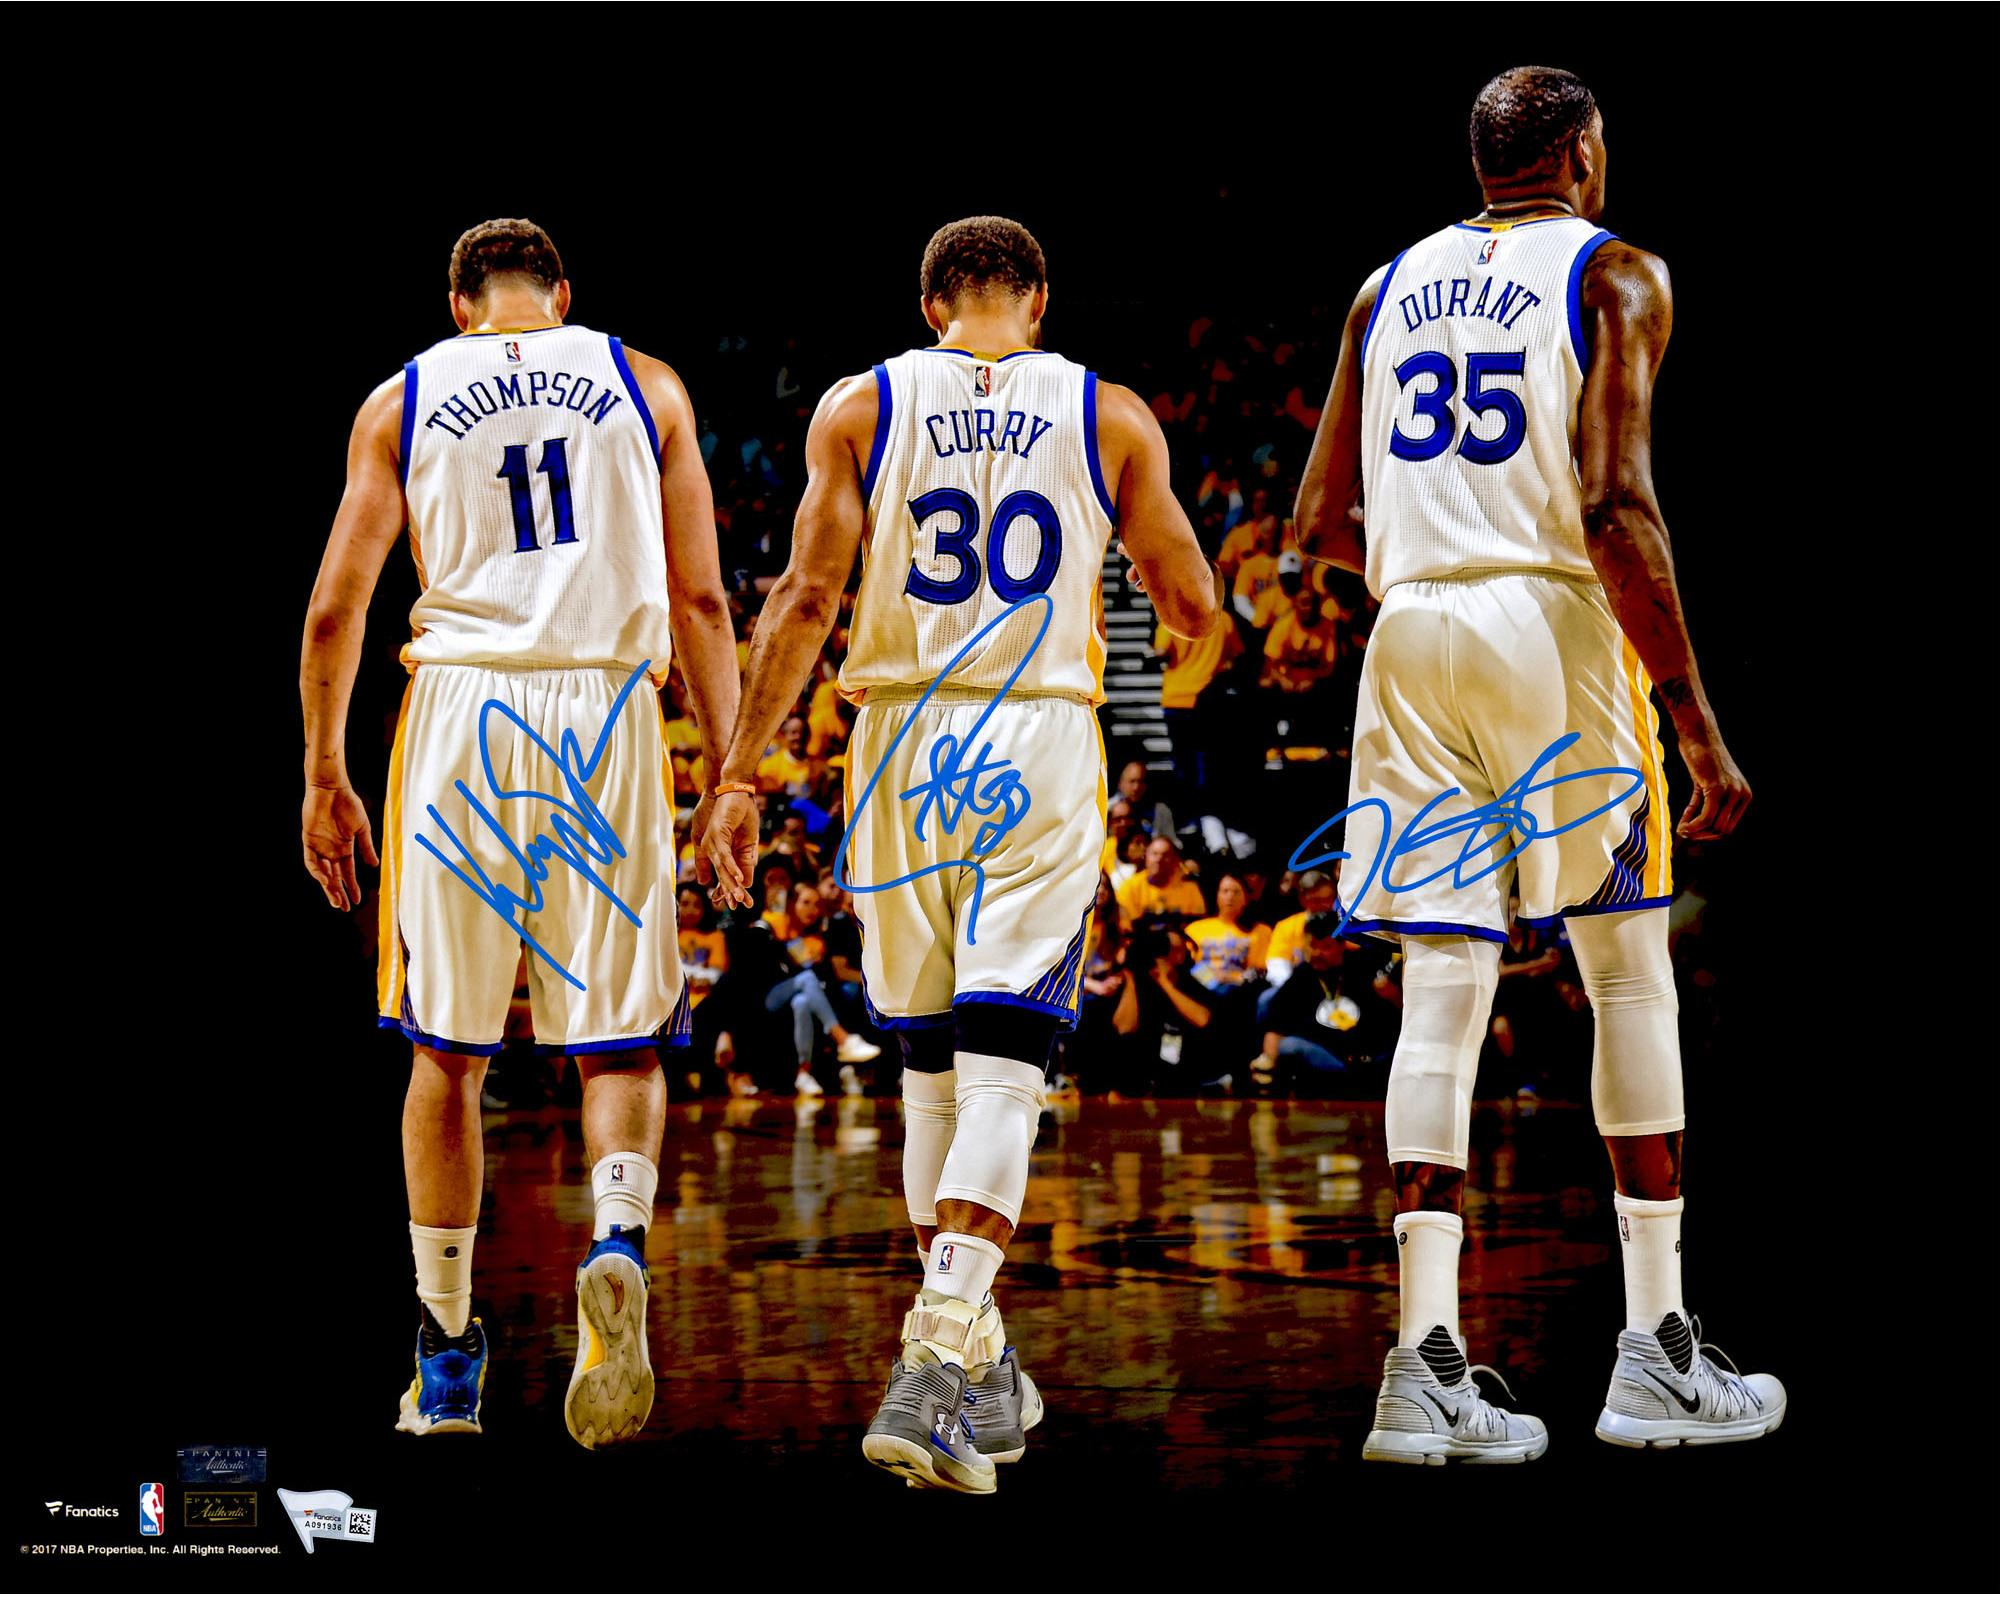 stephen-curry-klay-thompson-kevin-durant-golden-state-warriors-autographed-16-x-20-2017-nba-finals-champions-walking-away-photograph5-t7270459-2000